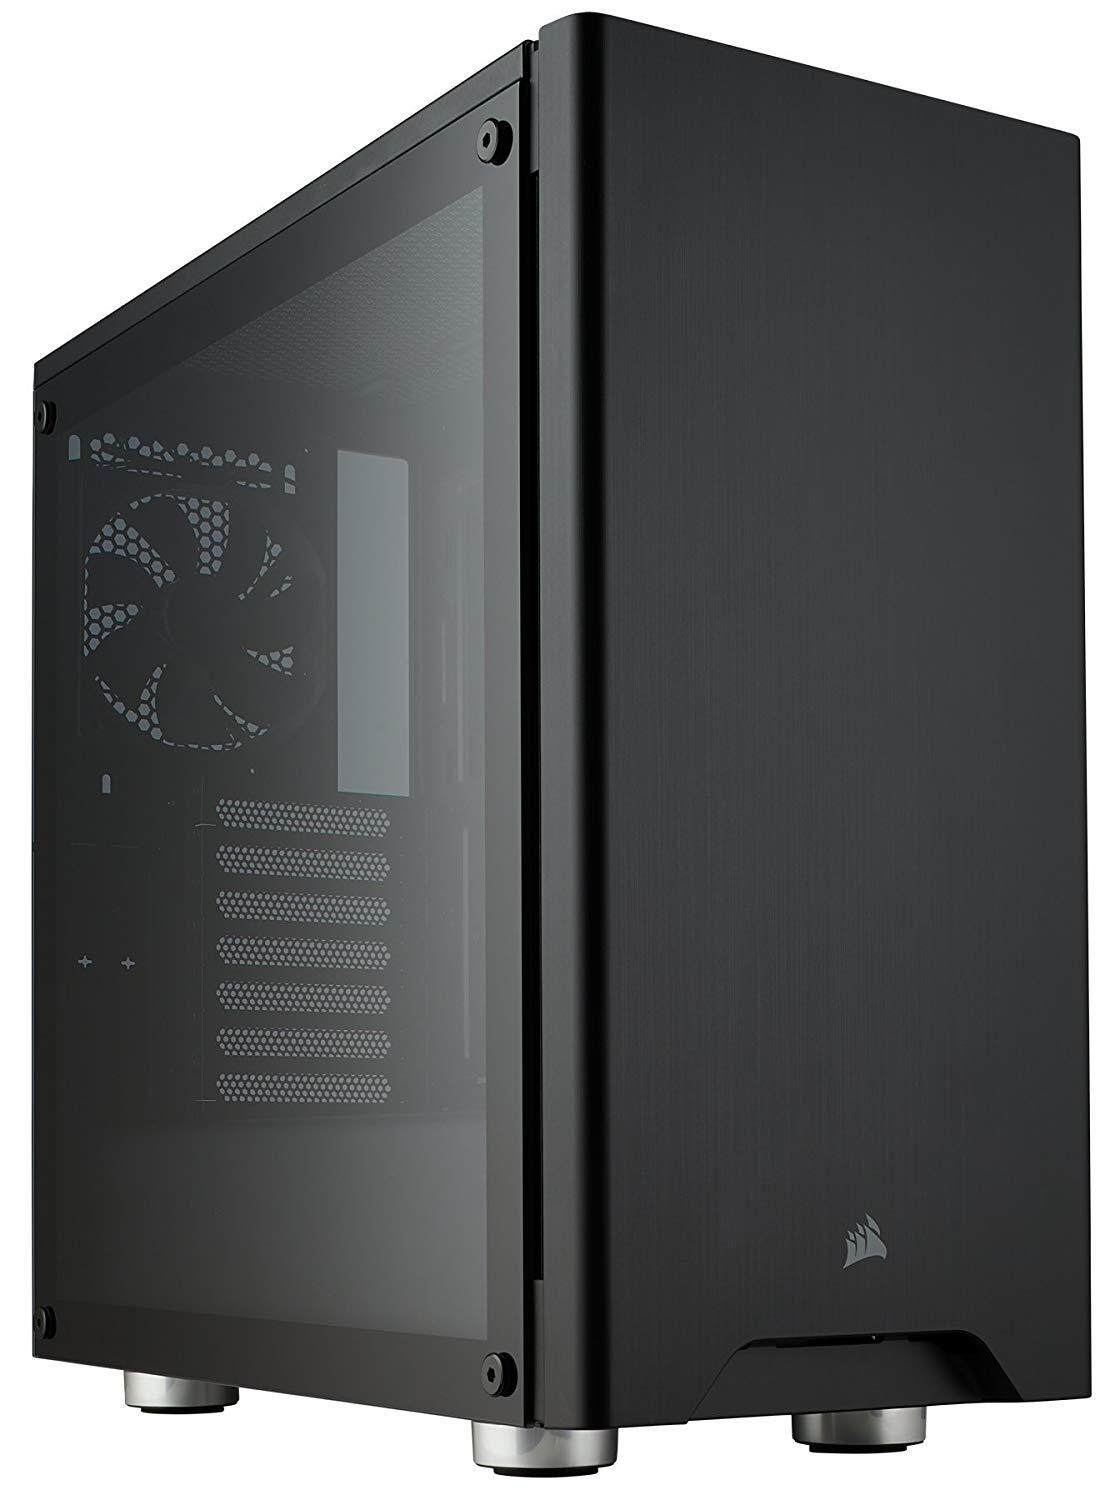 Corsair Carbide 275R Tempered Glass Mid-Tower Gaming PC Computer Case (Black/White) Malaysia